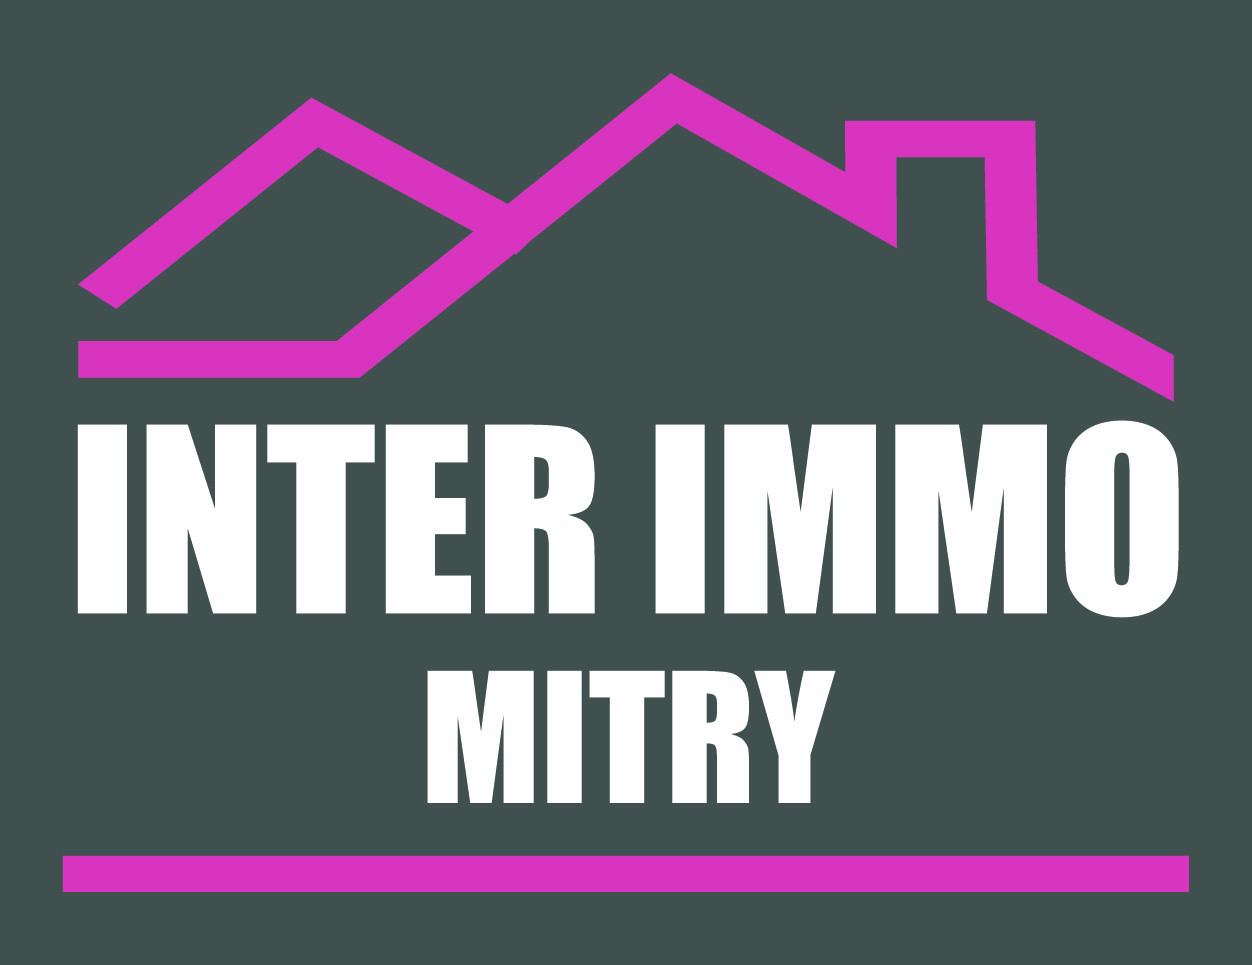 logo INTER IMMO MITRY